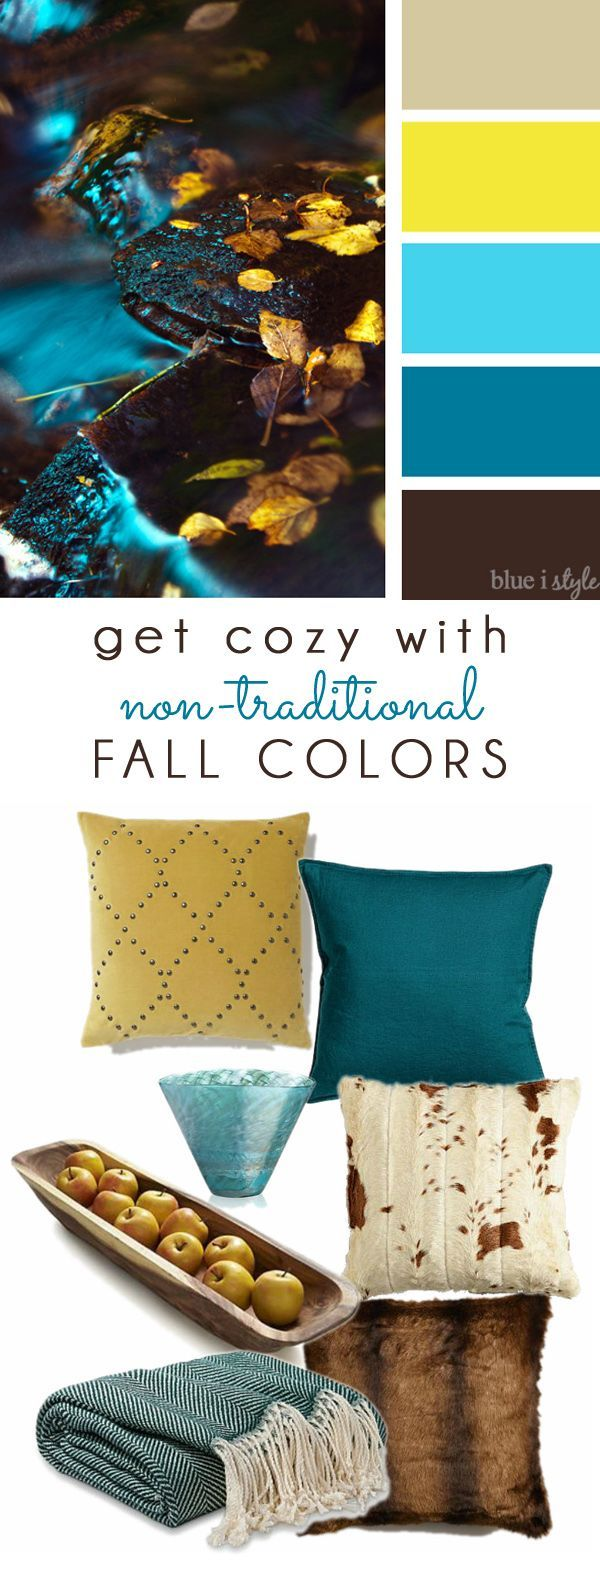 COZY FALL COLORS! A simple mood board to help you bring these non-traditional fall colors of brown, aqua, teal, and yellow into your home decor.